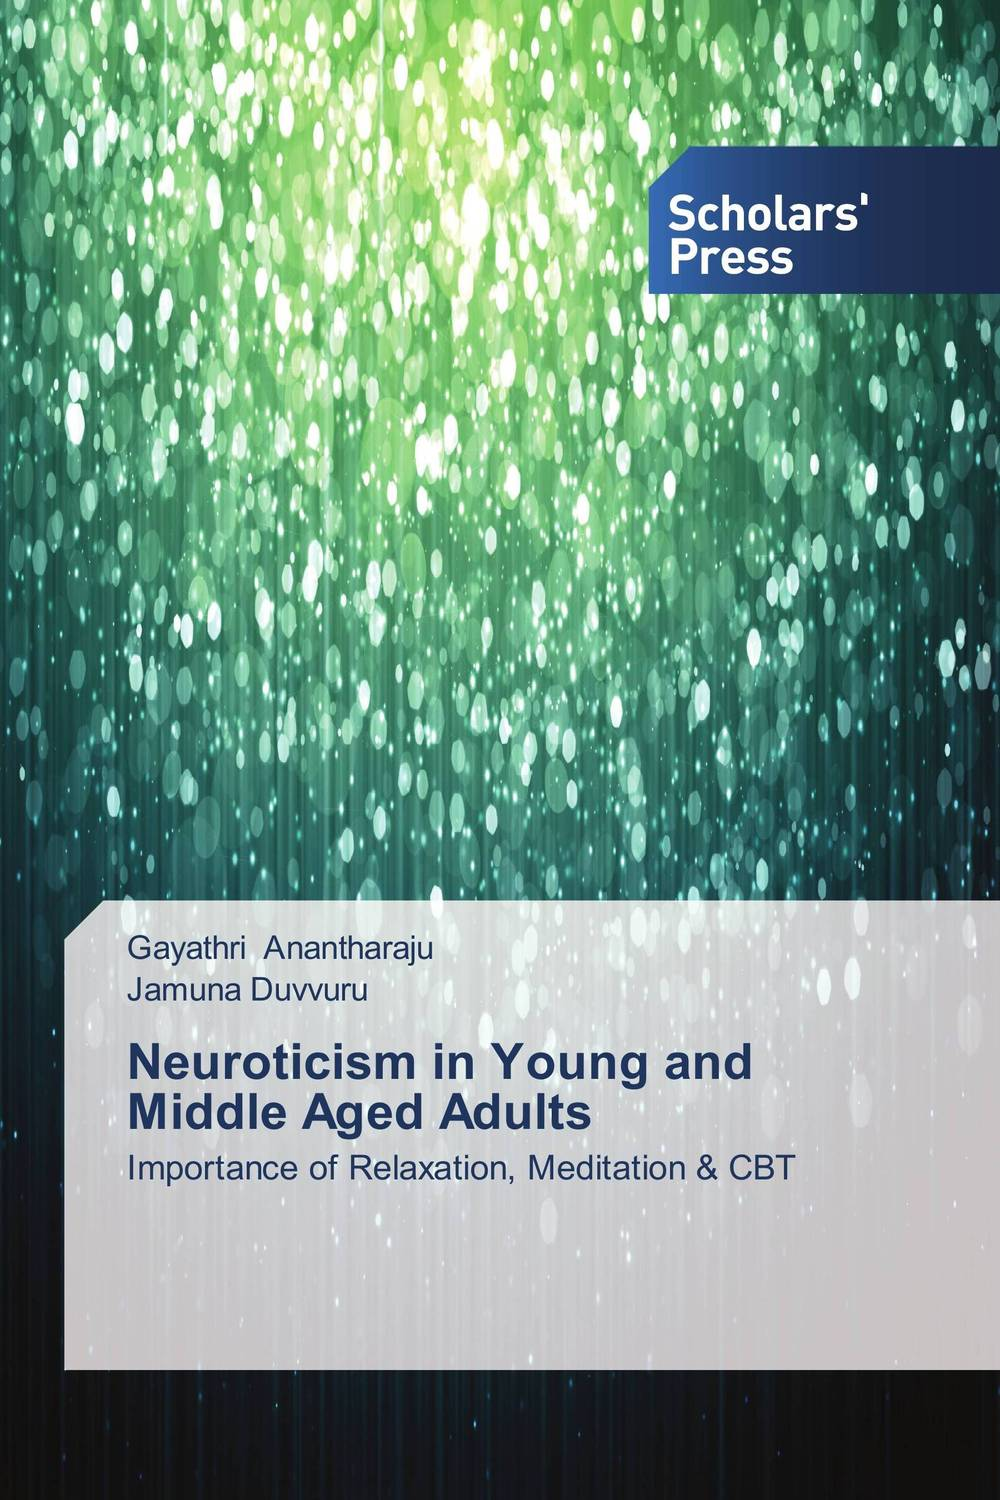 Neuroticism in Young and Middle Aged Adults depression anxiety and stress in young adult breast cancer women